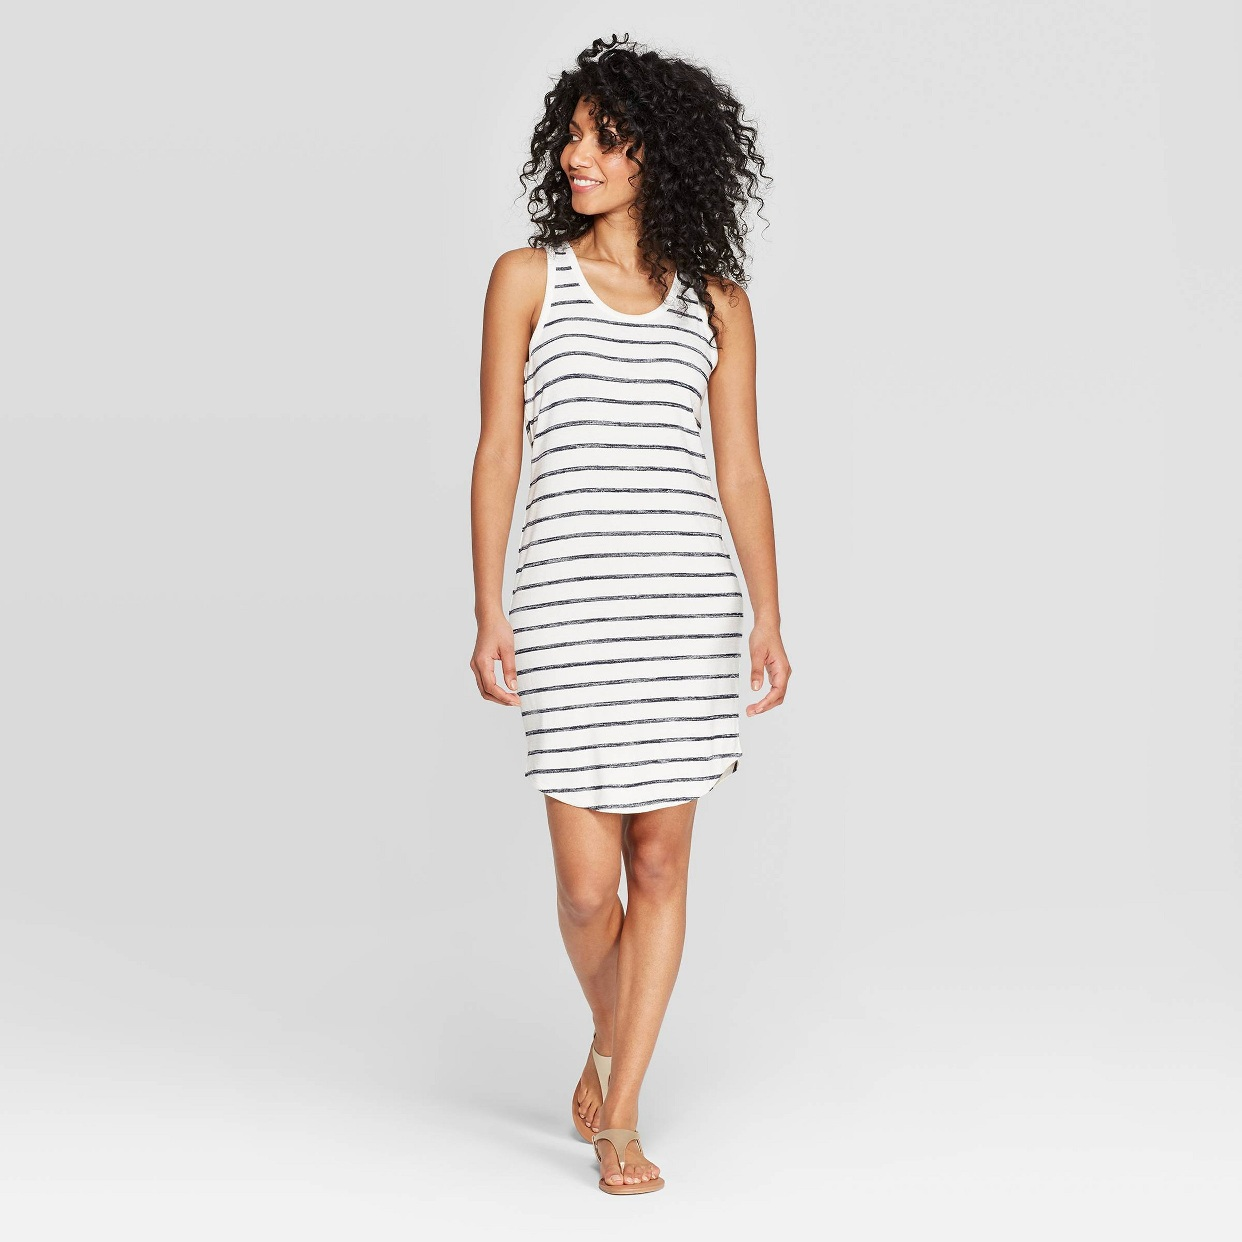 - My favorite o part about this dress is the material. It's a knit fabric that is a little thicker and so soft. Love me a stripe dress!Find it here.